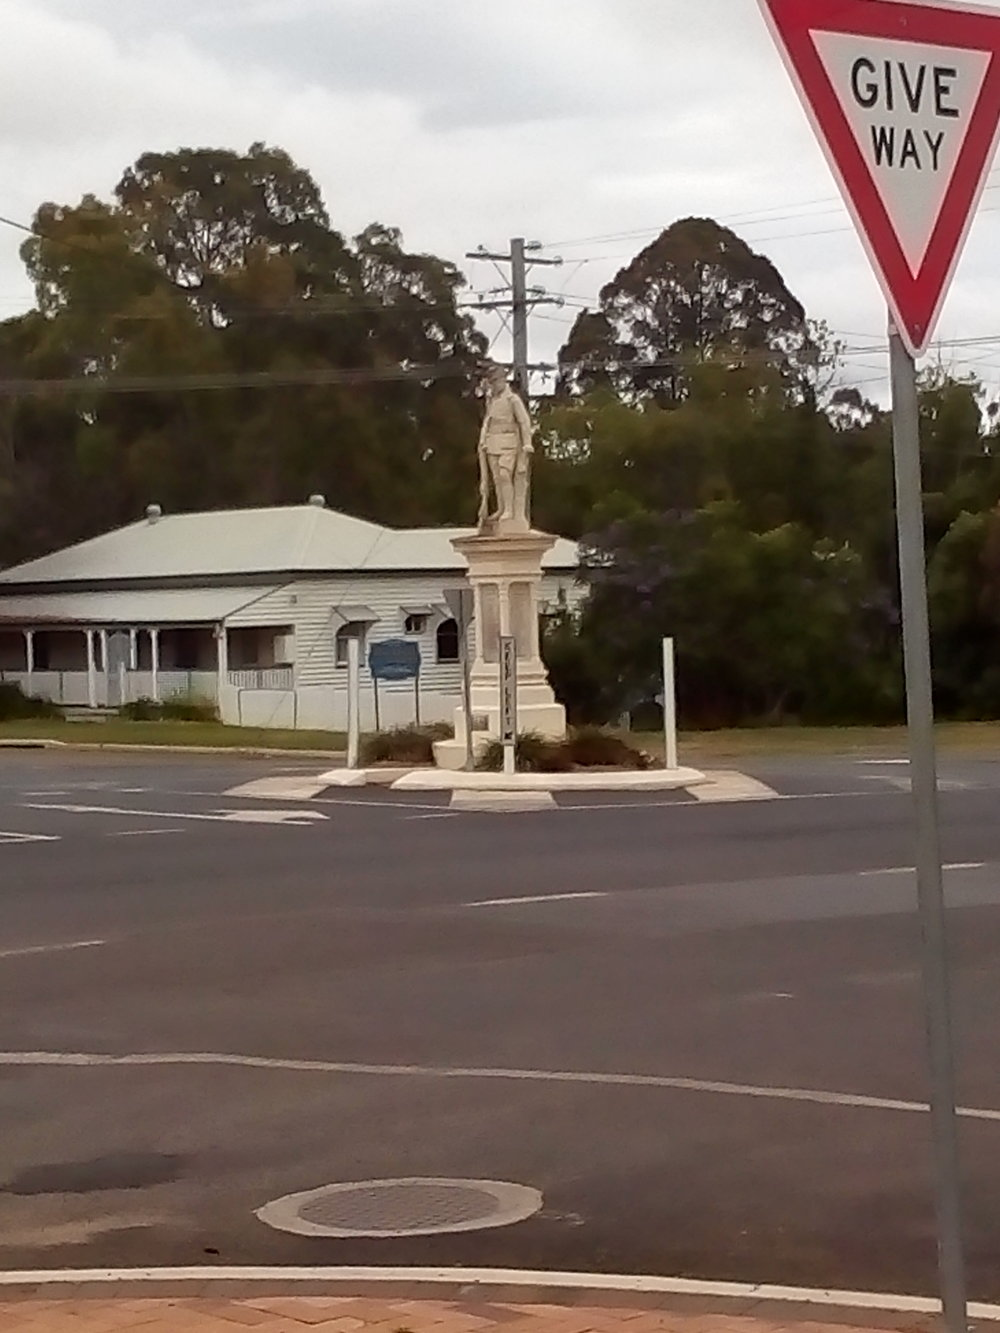 The lovely town of Blackbutt